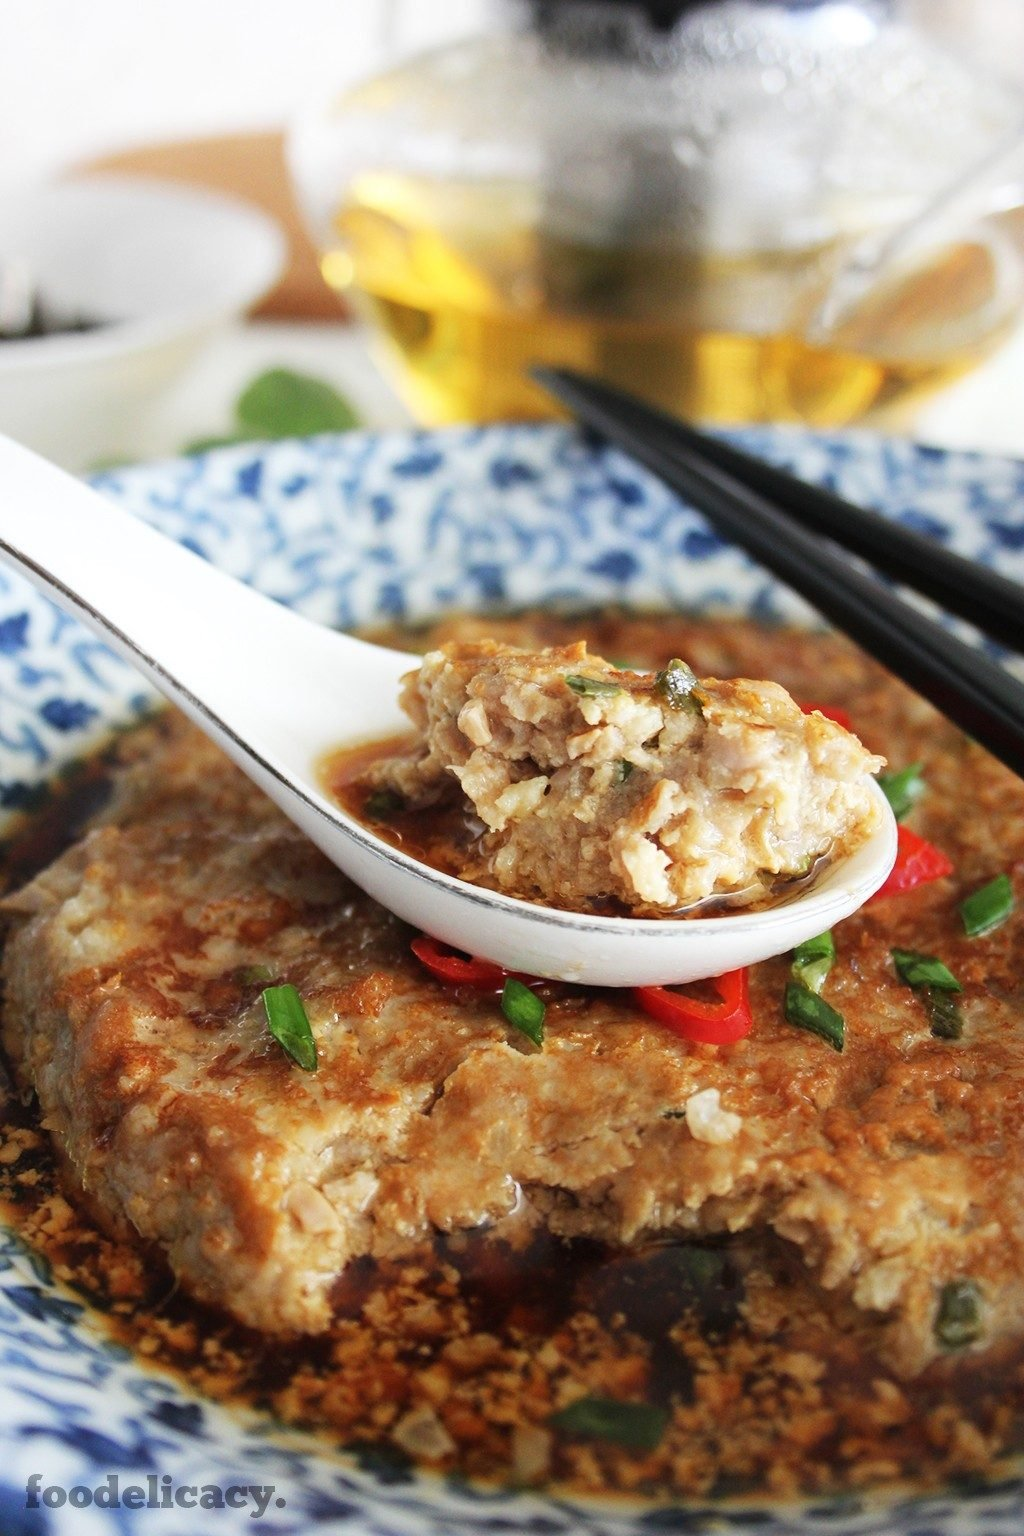 Steamed minced pork with water chestnut foodelicacy steamedmincedporkwithwaterchestnut2f steamedmincedporkwithwaterchestnut1b steamed minced pork with water chestnut recipe forumfinder Choice Image